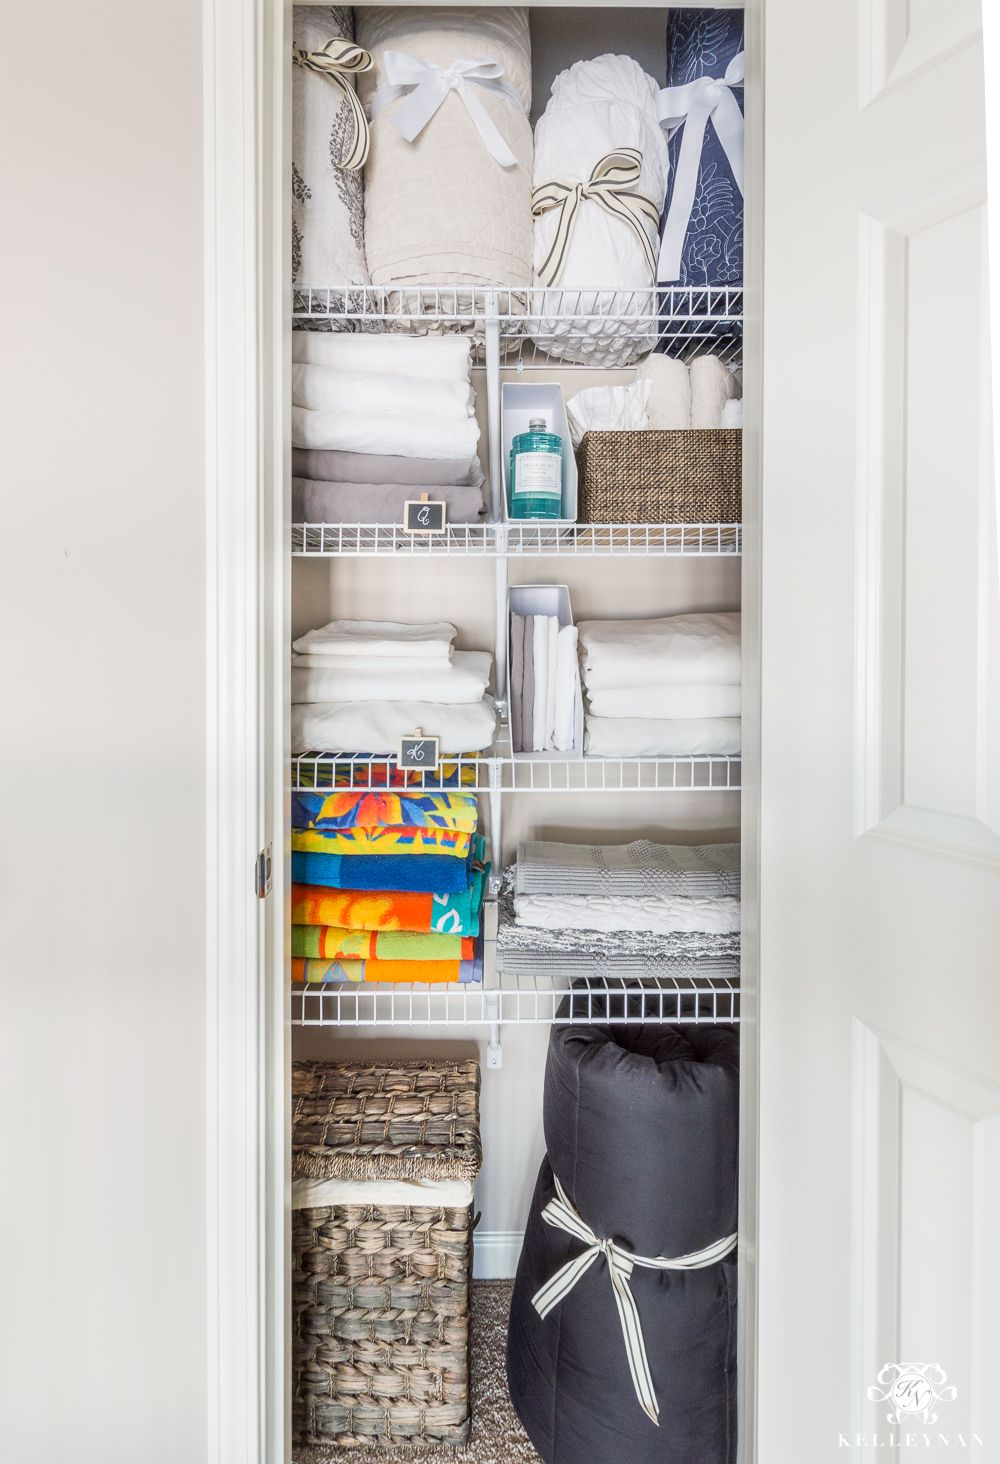 Bedding Storage A Small Organized Linen Closet And Ideas To Store Bulky Bedding